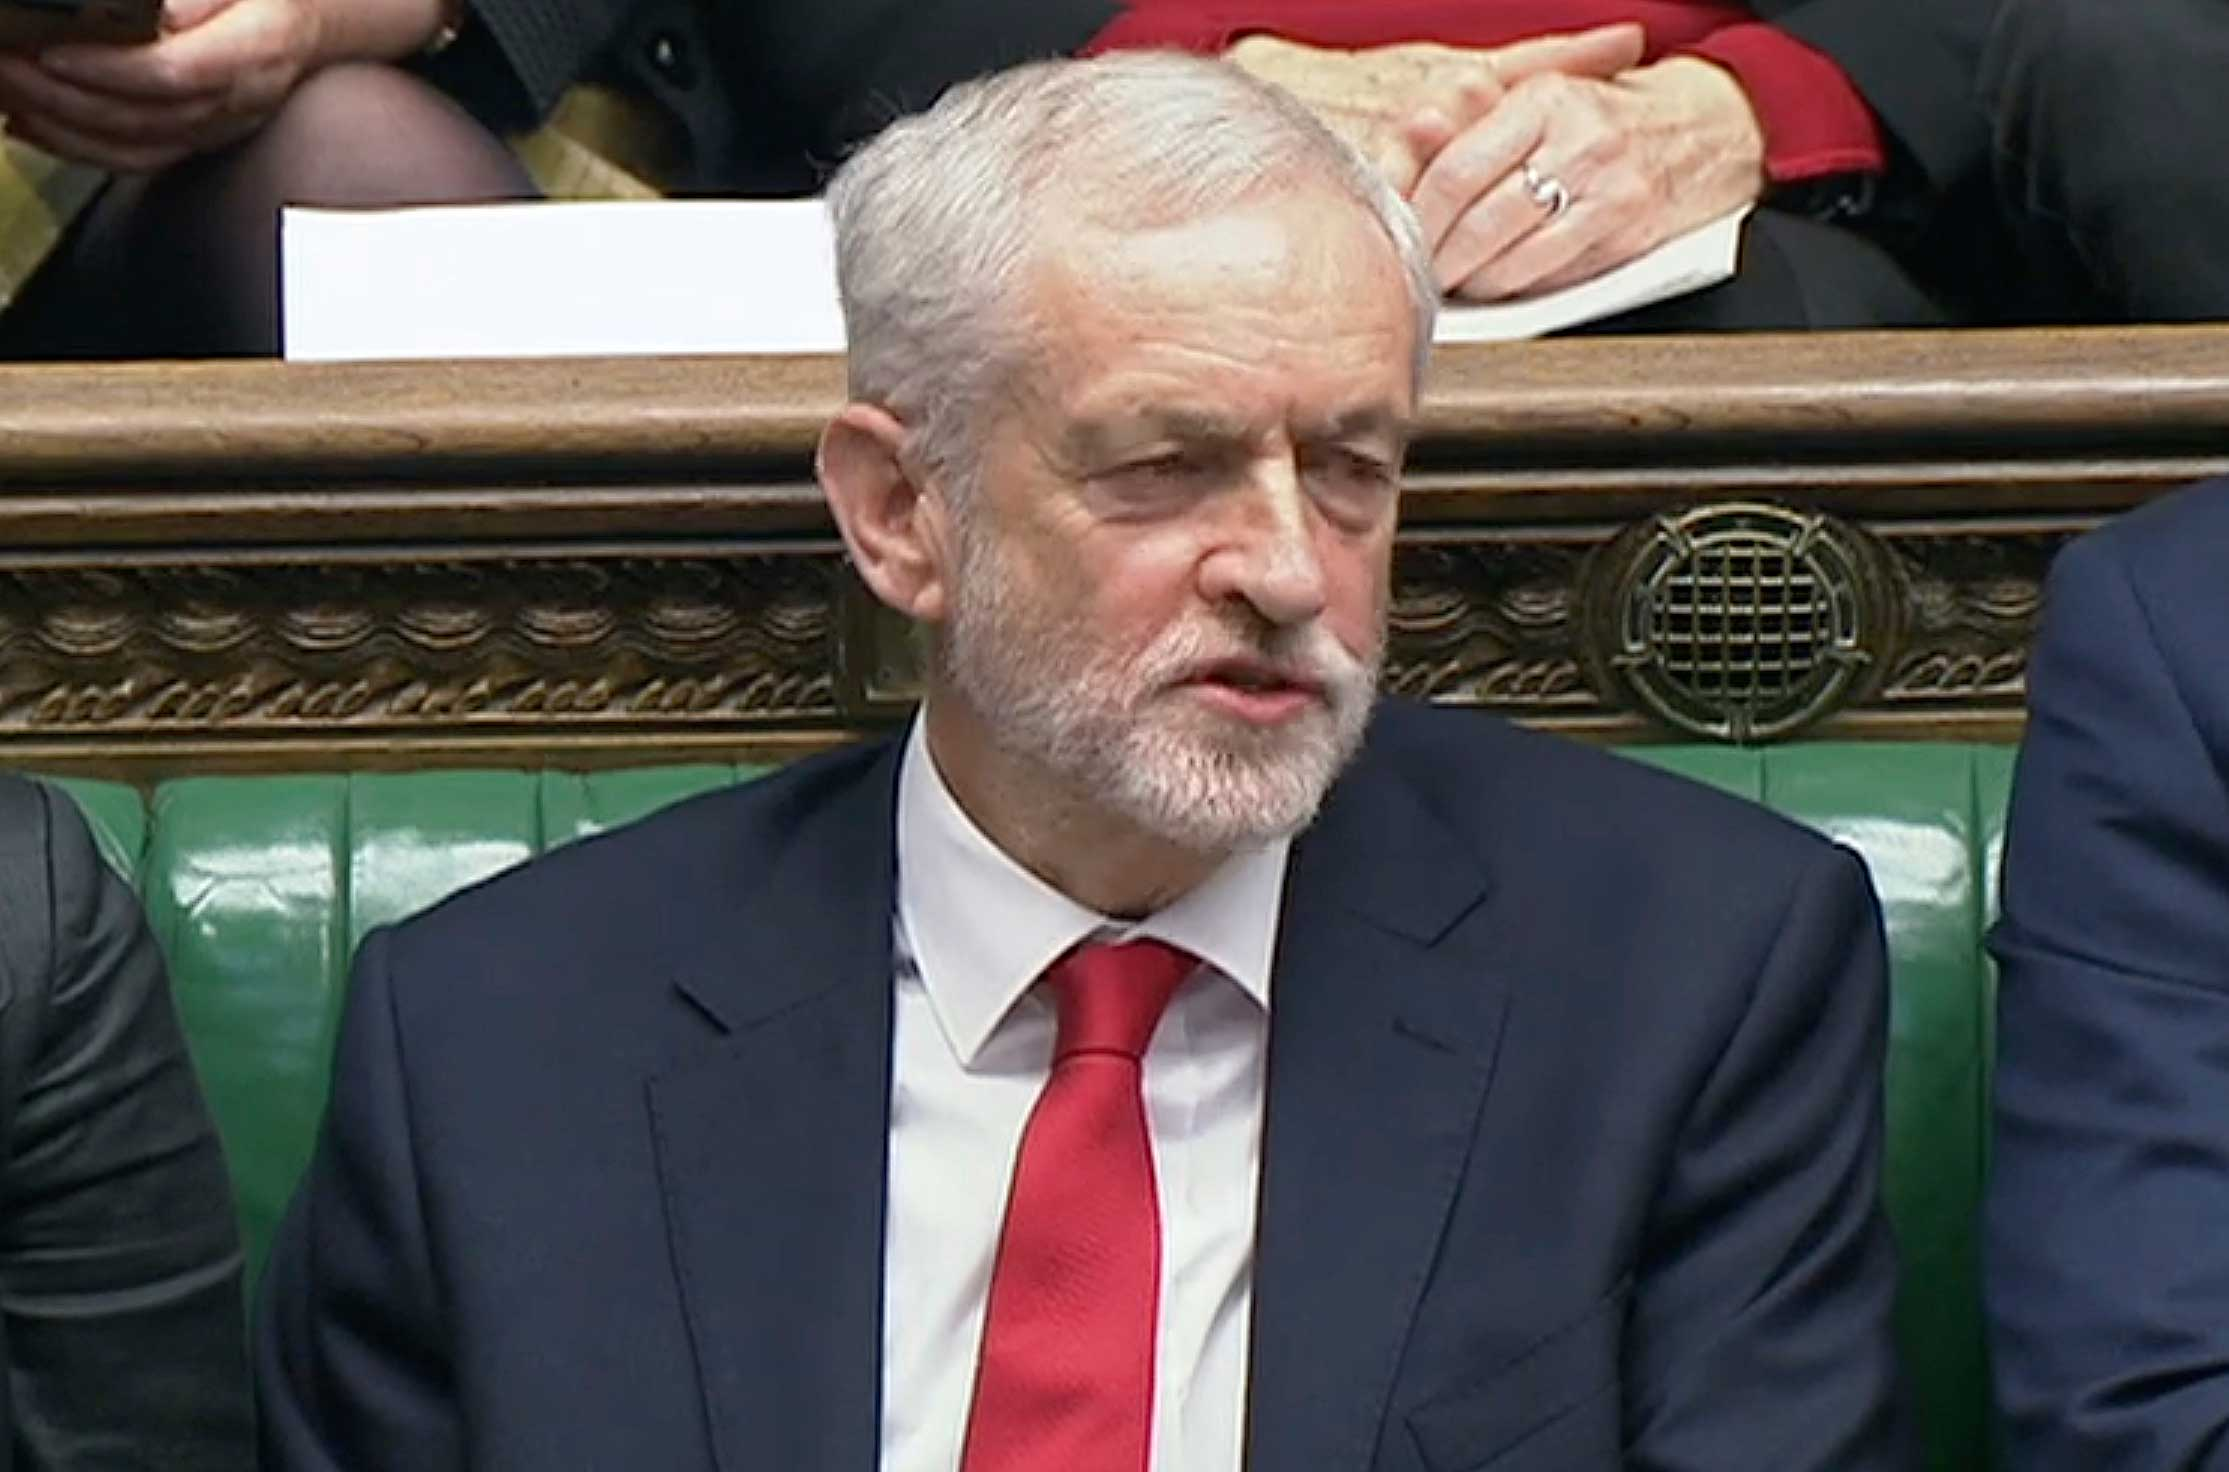 Jeremy Corbyn during the weekly Prime Minister's Questions in the House of Commons on December 19, 2018.